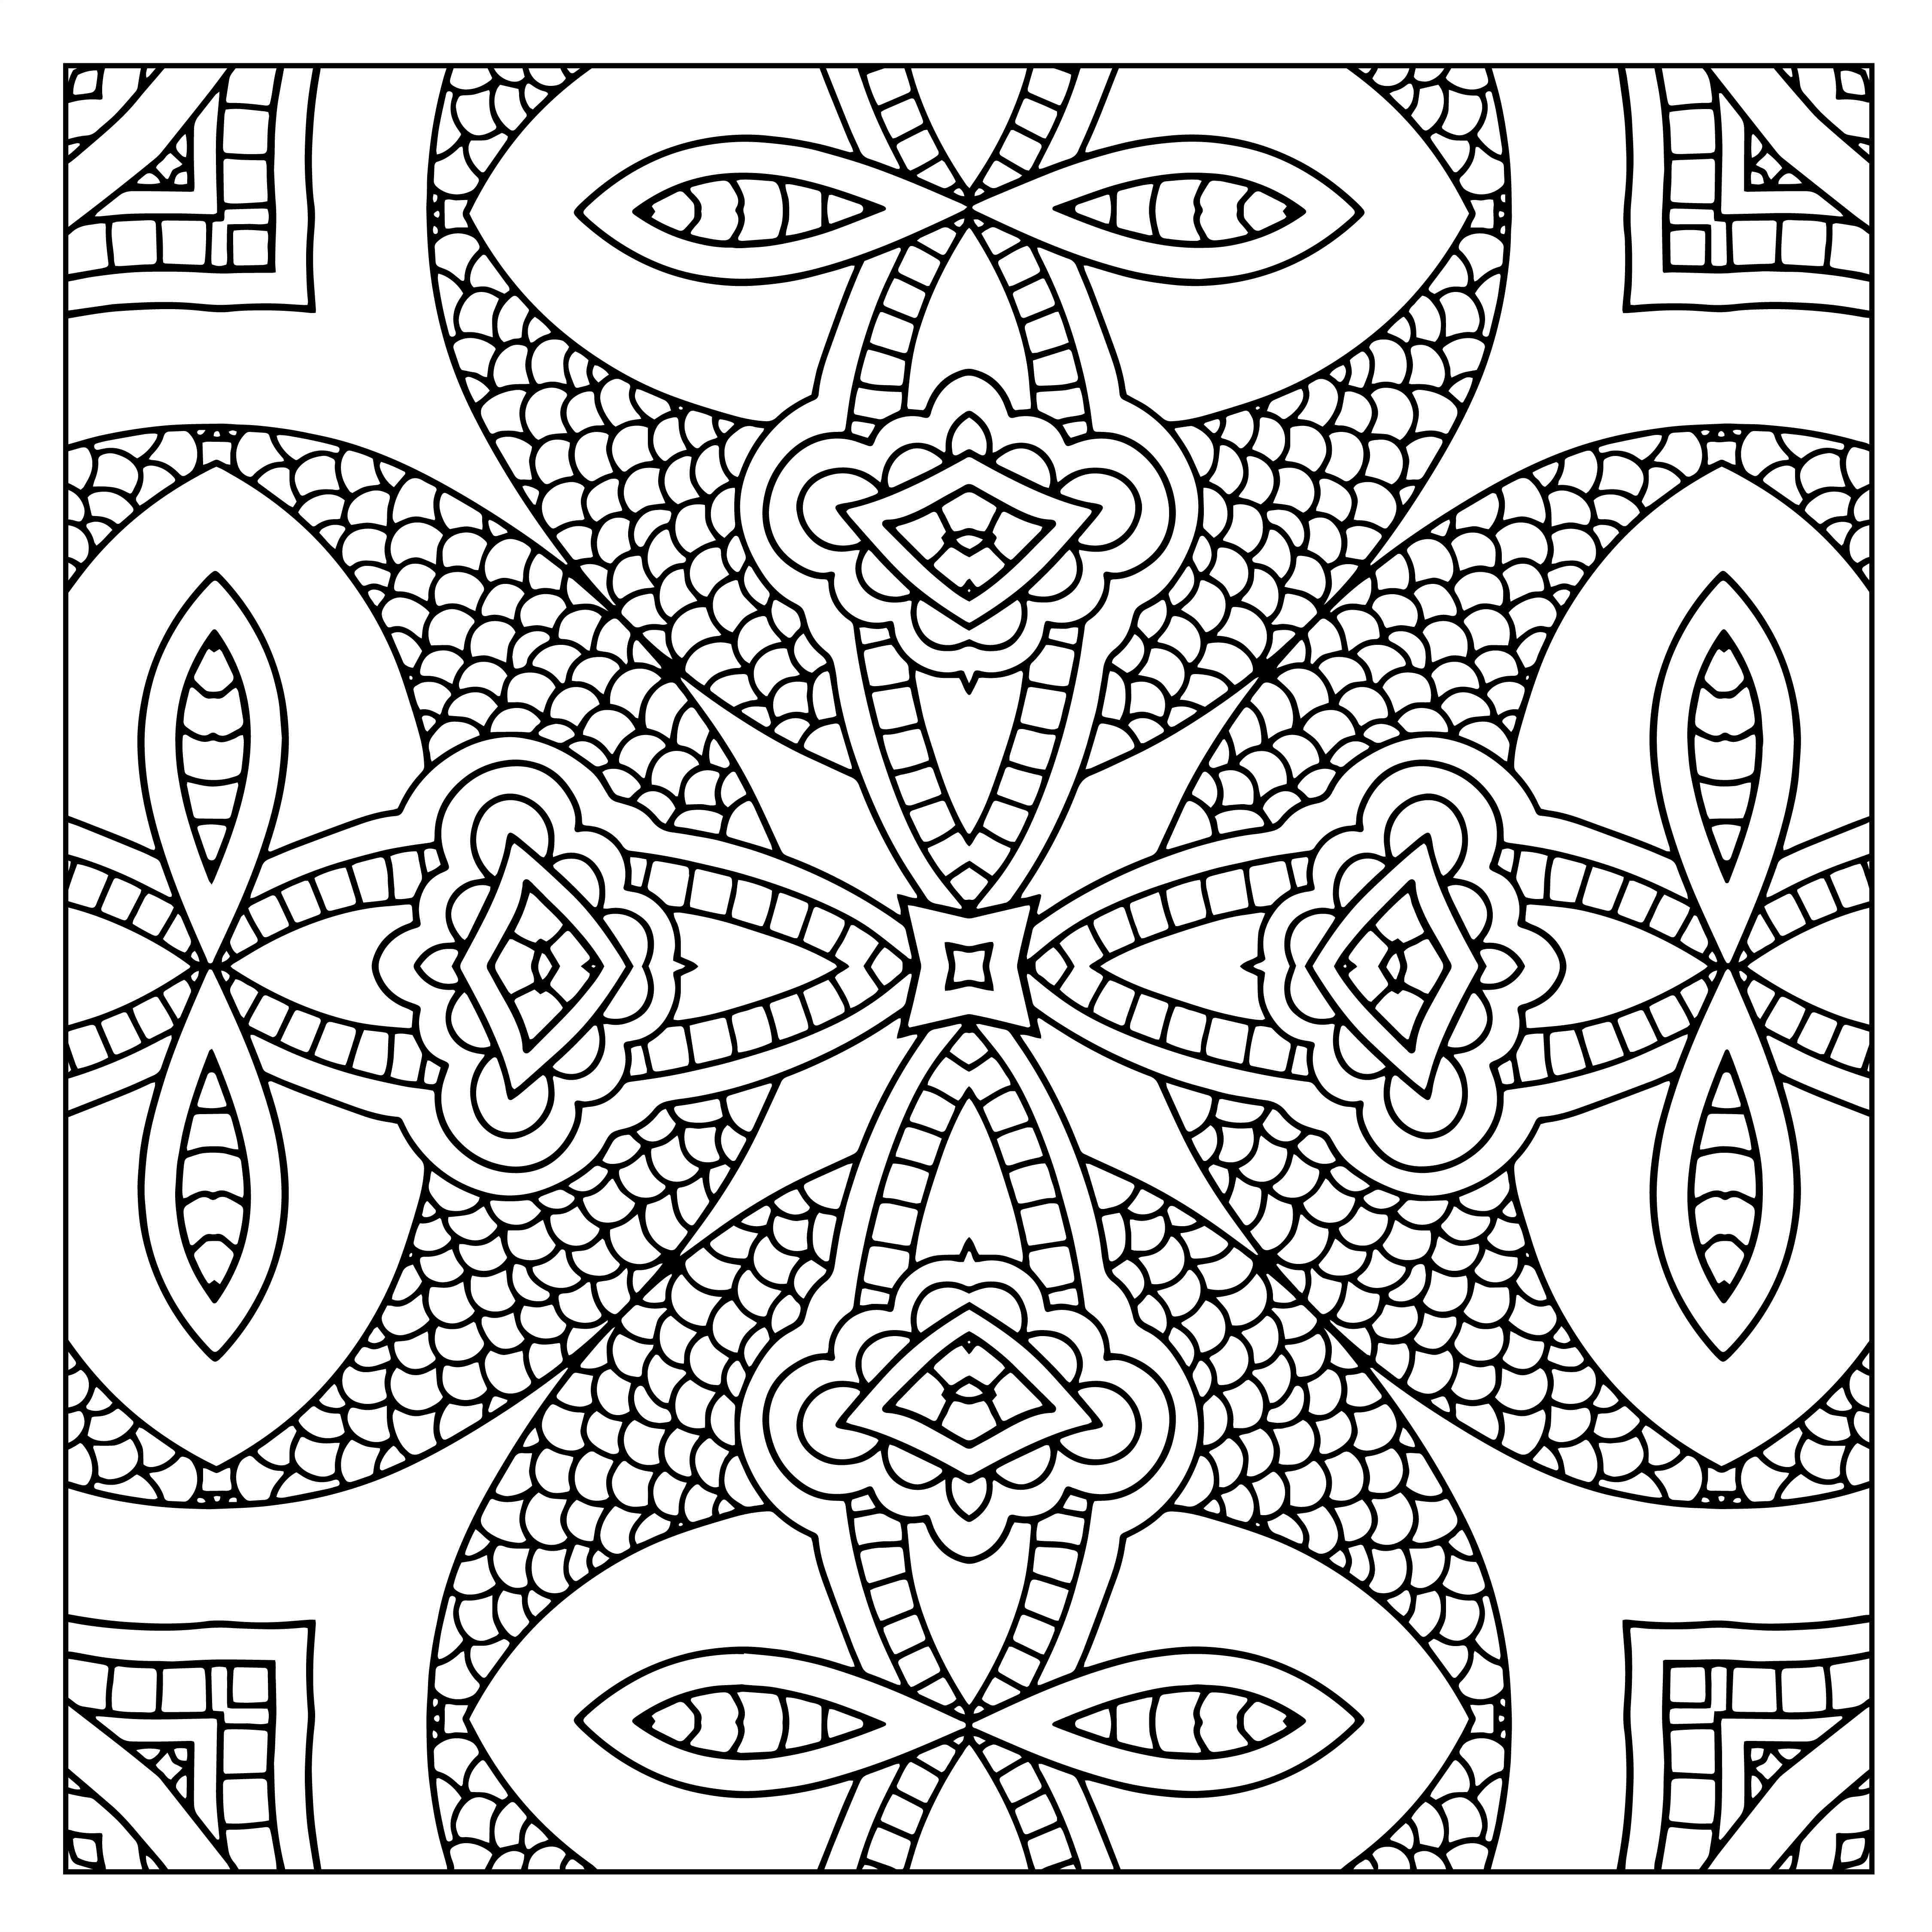 kaleidoscope coloring pages kaleidoscope coloring pages for adults coloring home coloring kaleidoscope pages